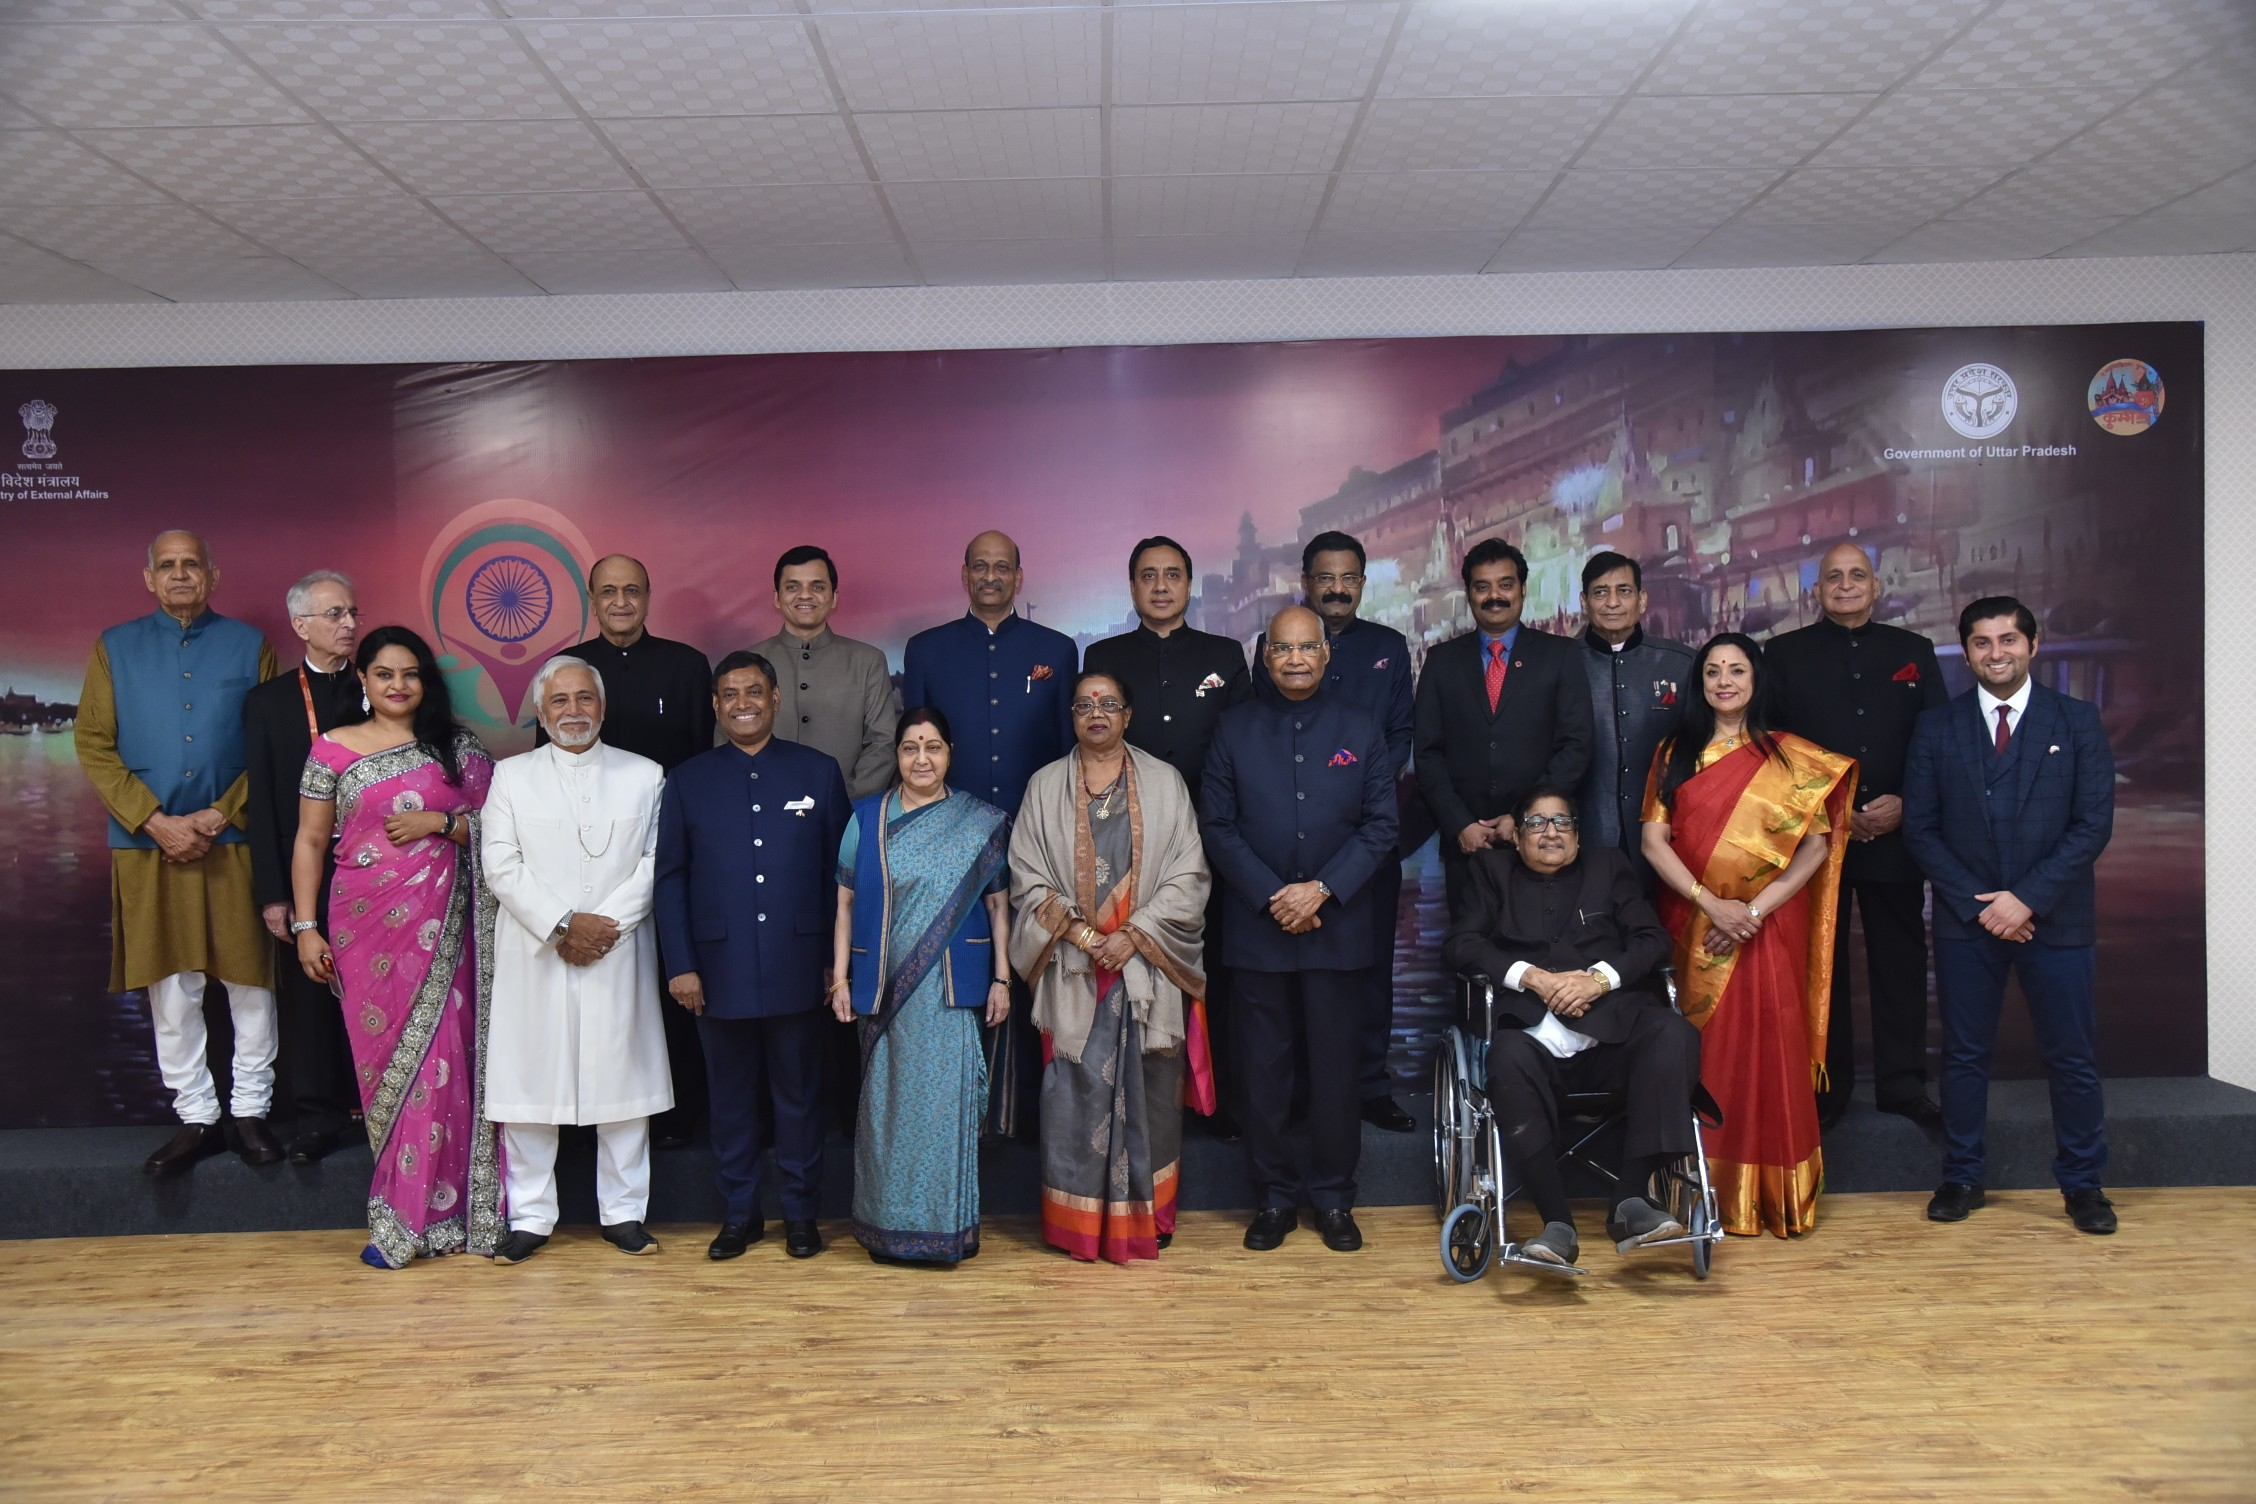 Group photographs of pravasi bhartiya samman winners with president and External Affairs Minister in Varanasi during pbd-2019